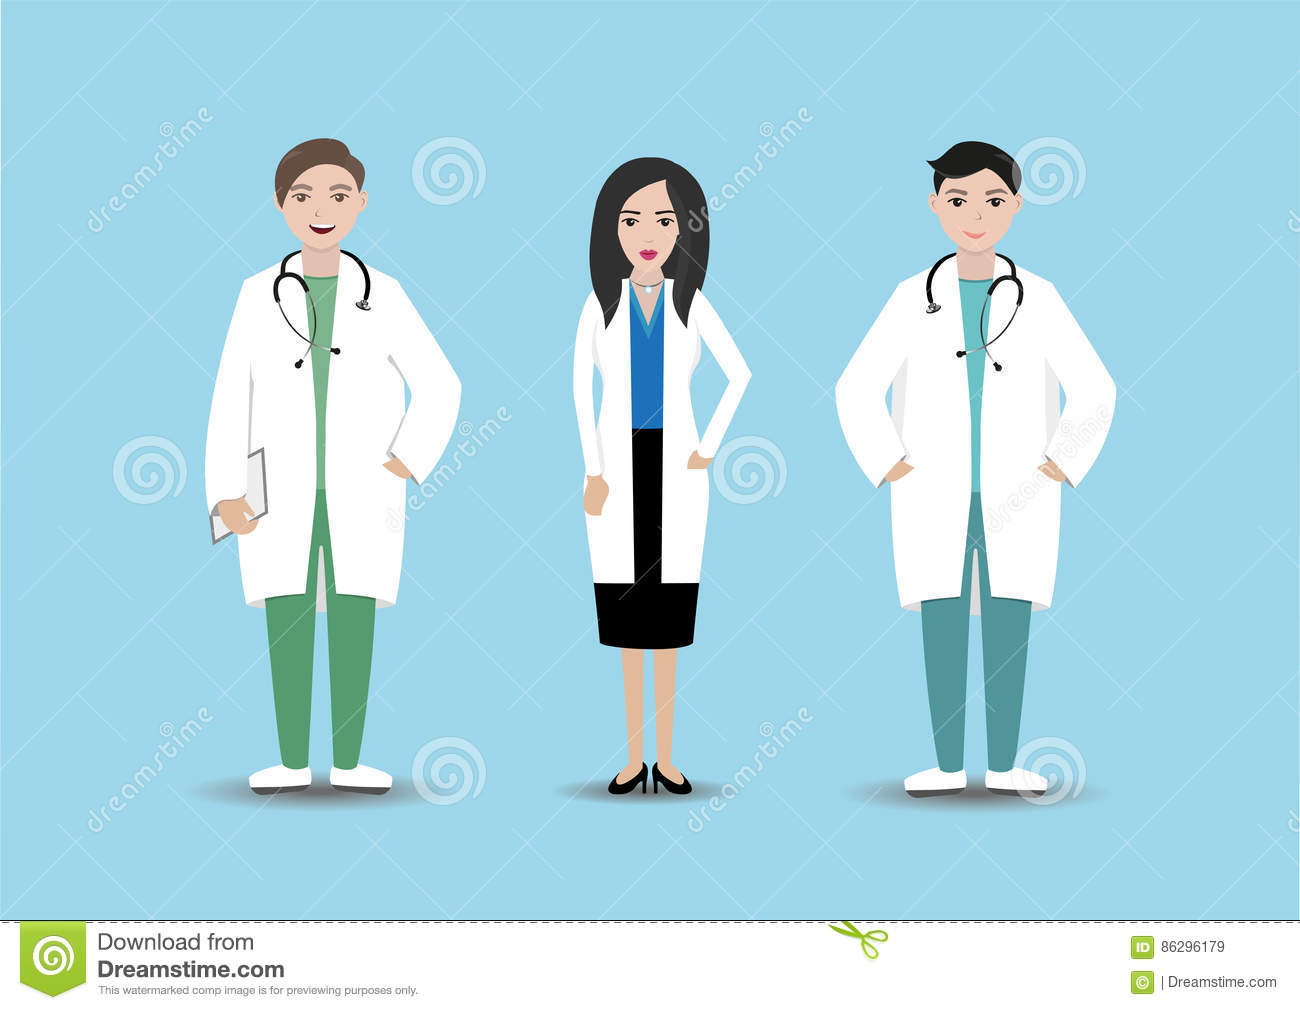 Medical personnel in hospital. Isolated doctors with folder and stethoscope on blue background. Clinic staff.